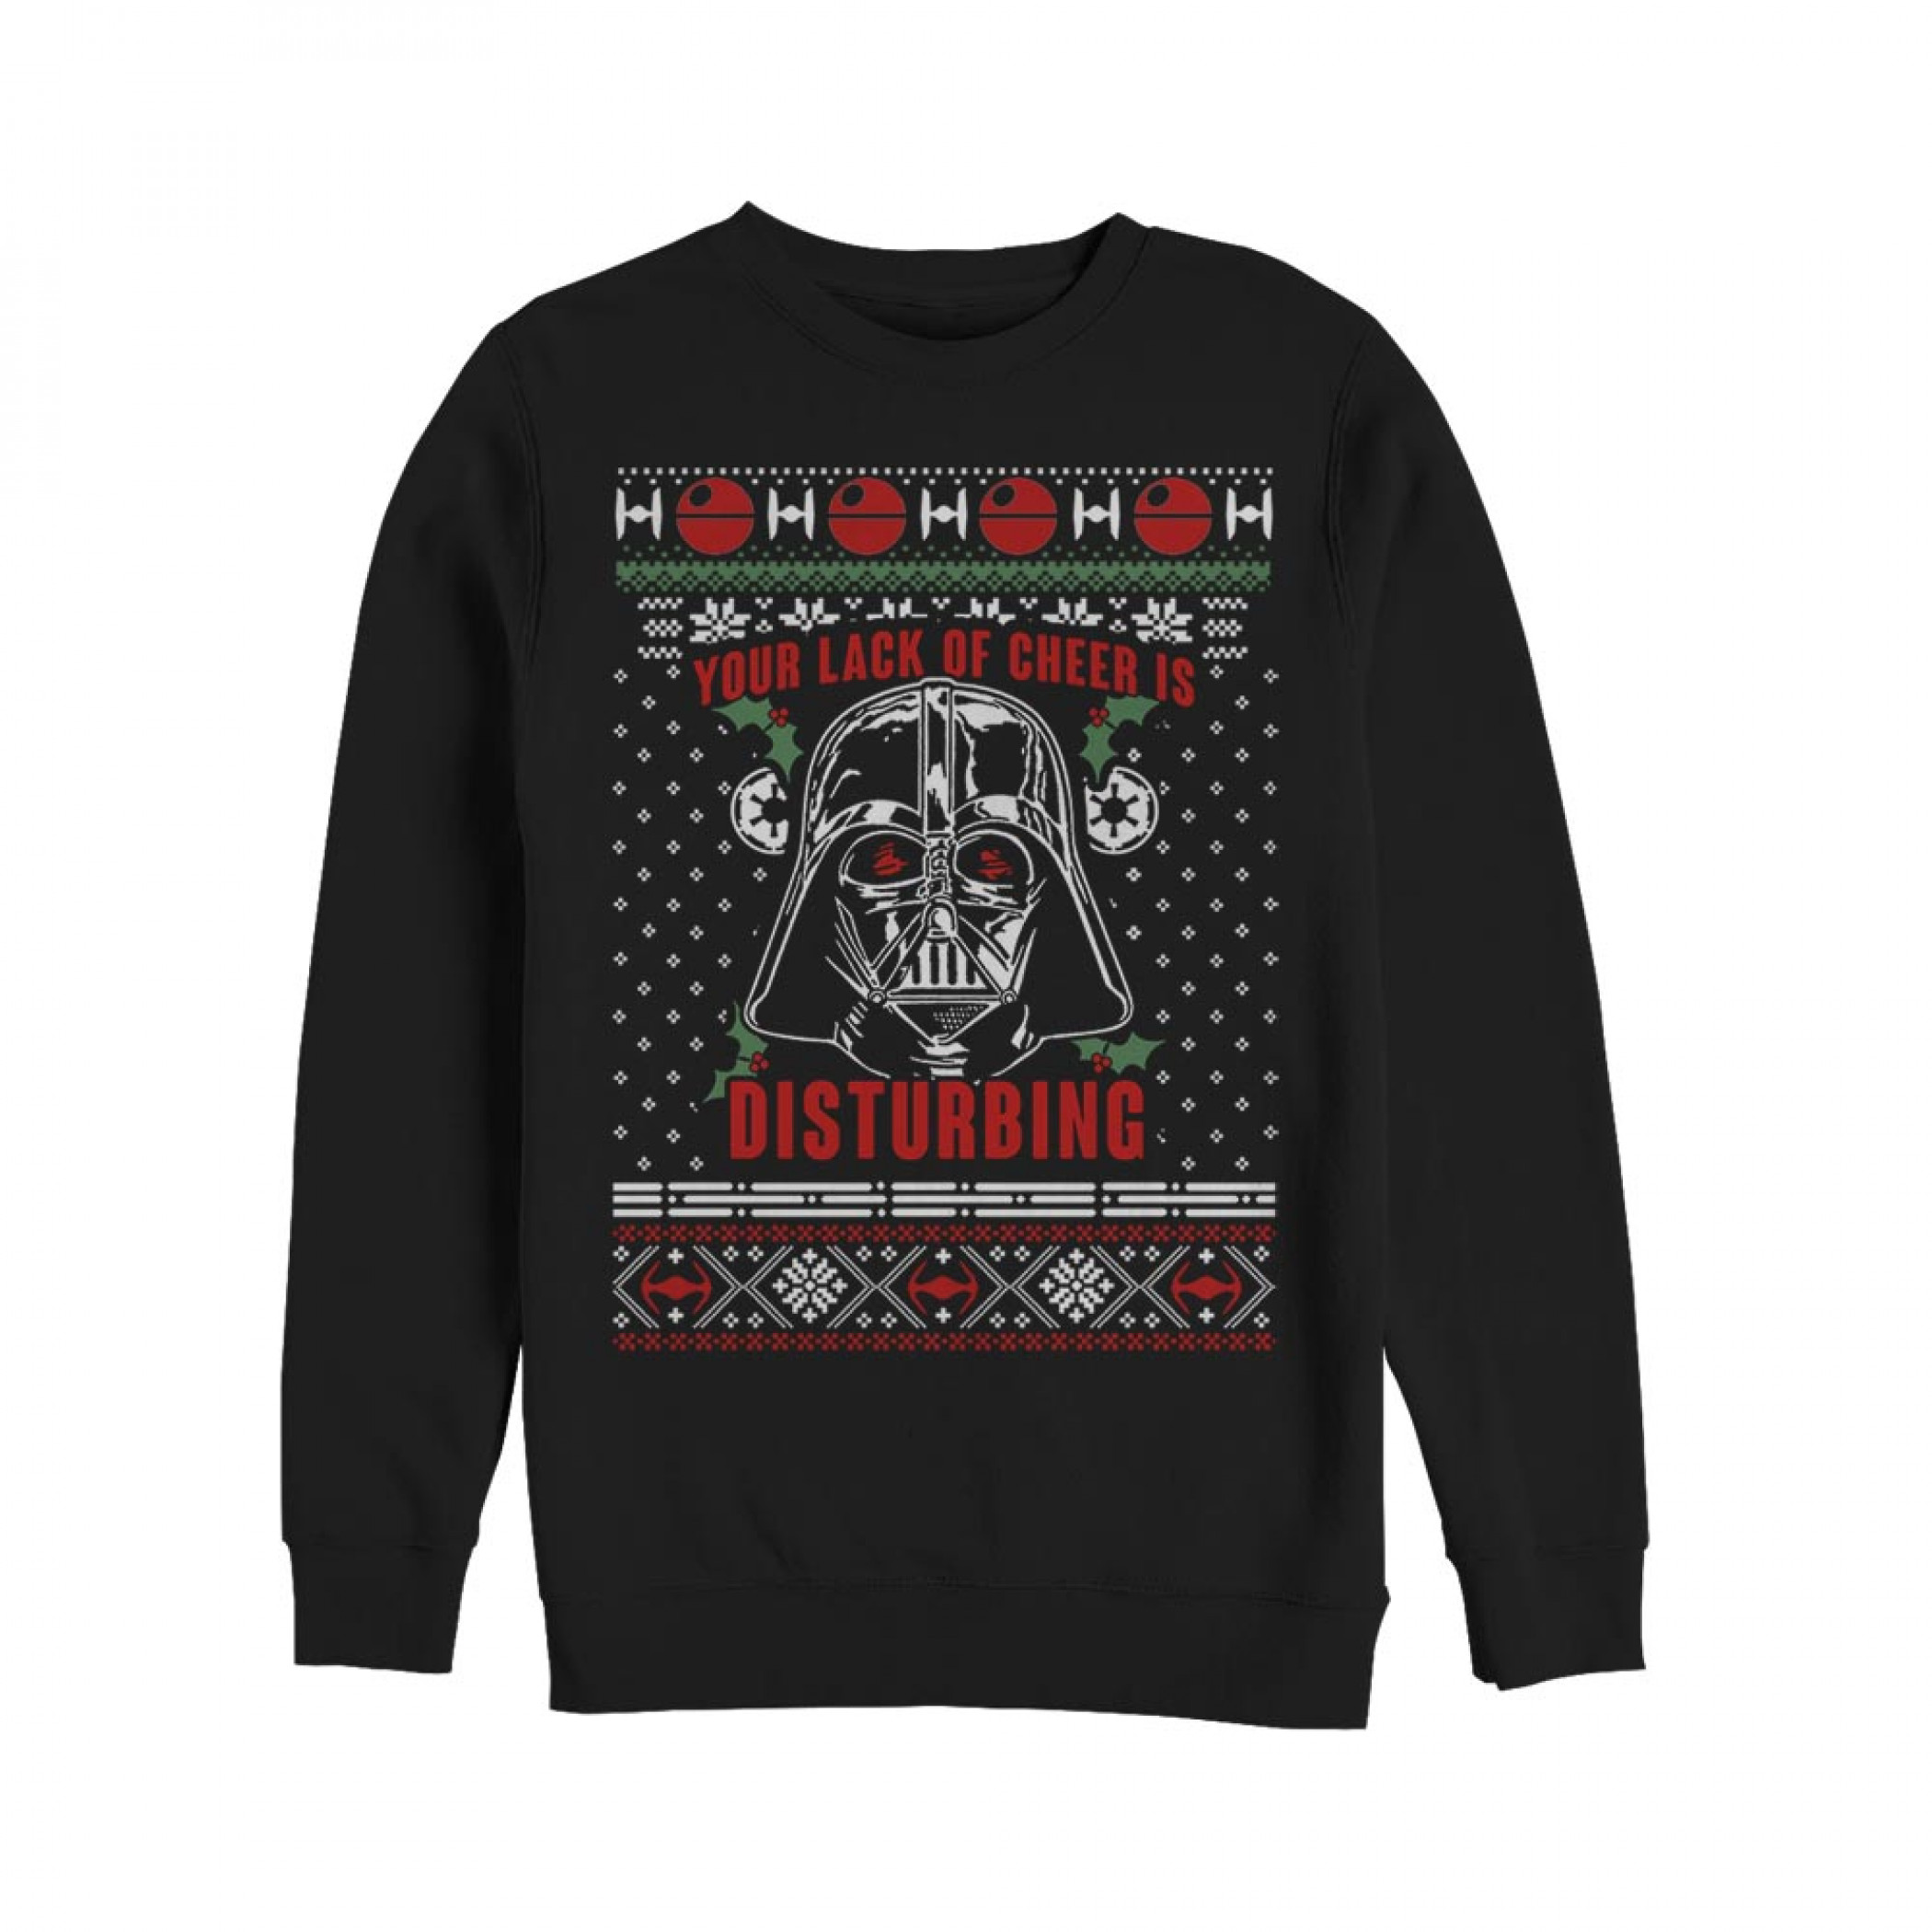 Star Wars Lack Of Cheer Disturbing Ugly Christmas Sweater Design Sweatshirt